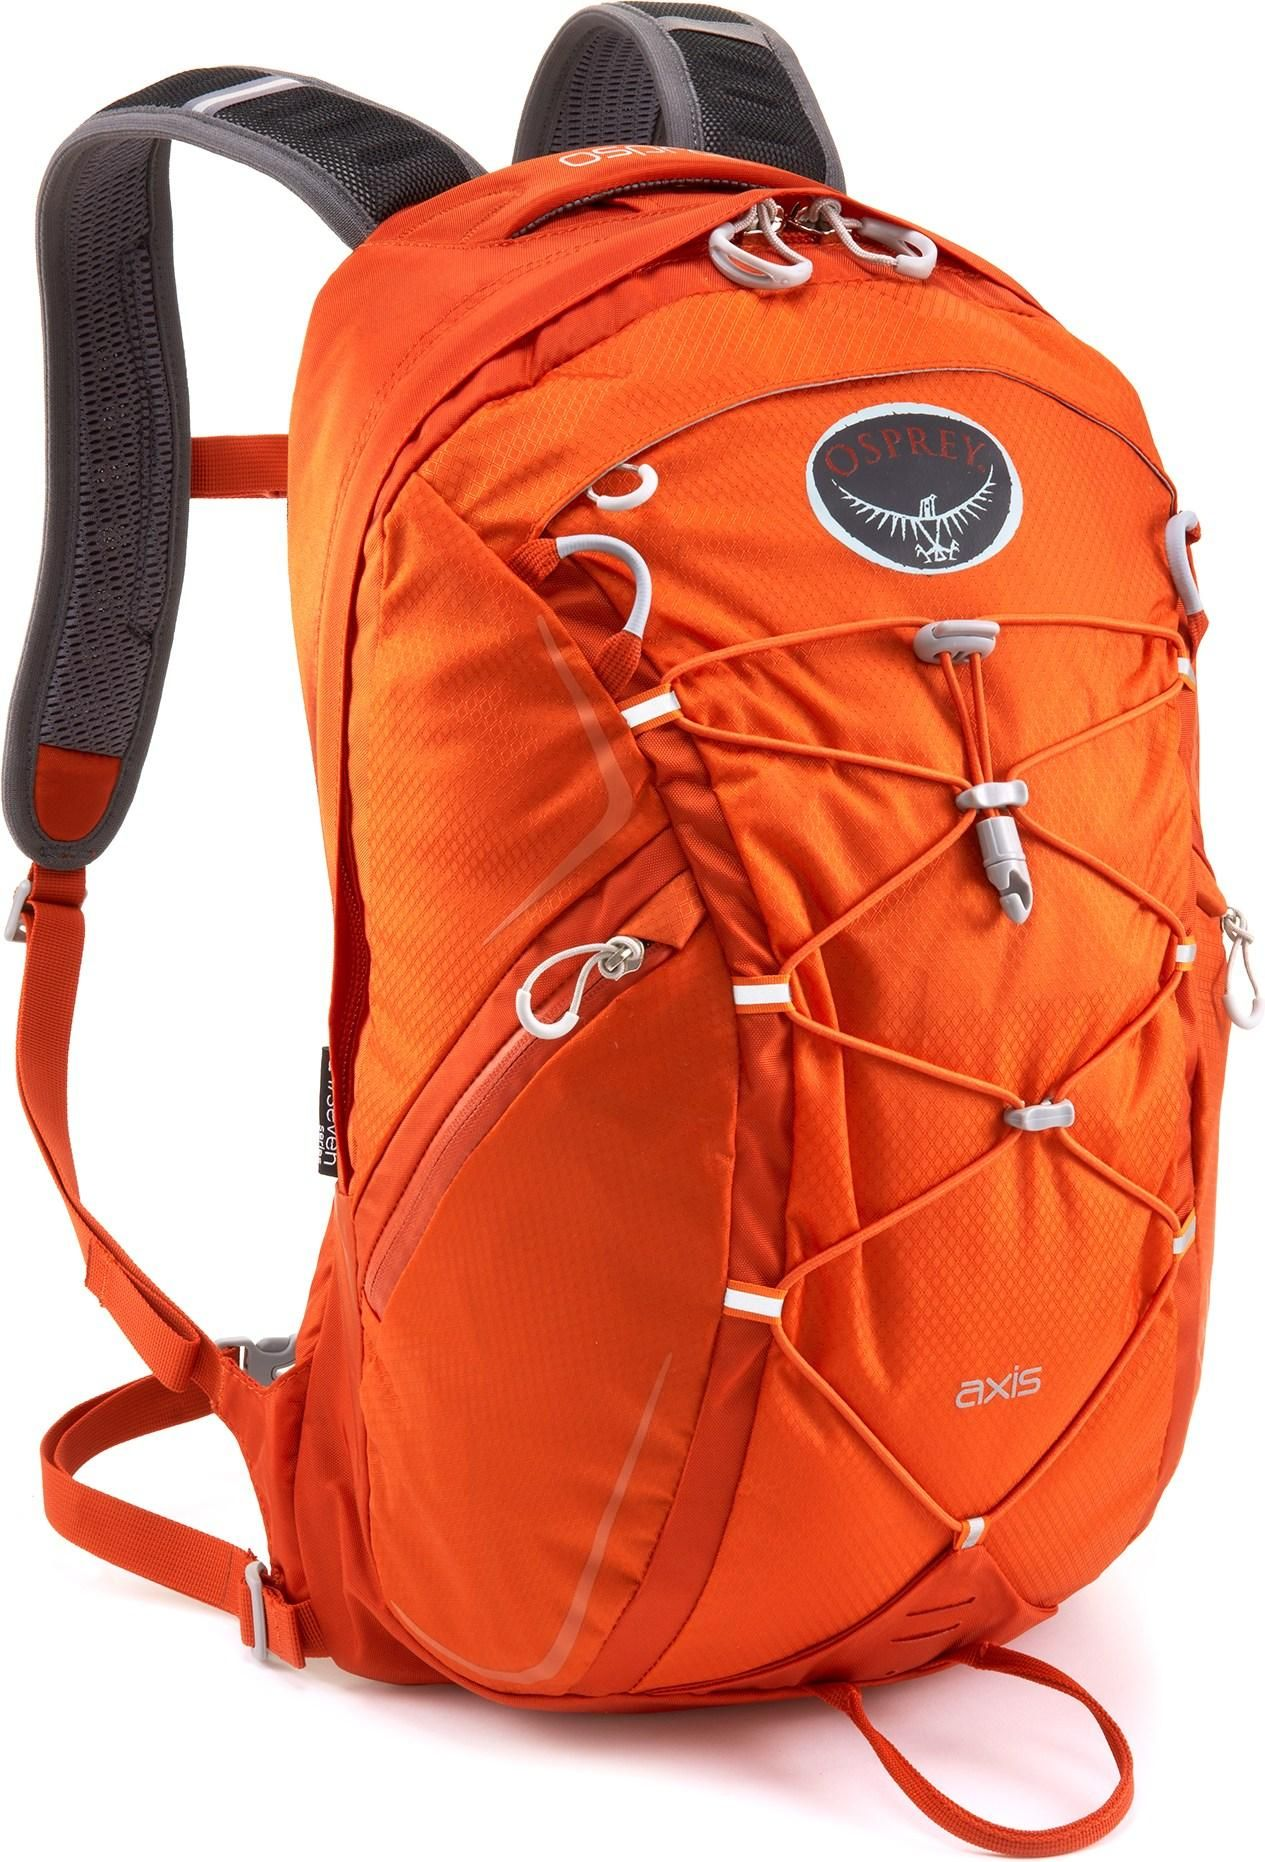 Bottom-padded sleeve protects Dad's laptop during the week and holds his hydration reservoir on weekend hikes. Osprey Axis Daypack. #REIGifts